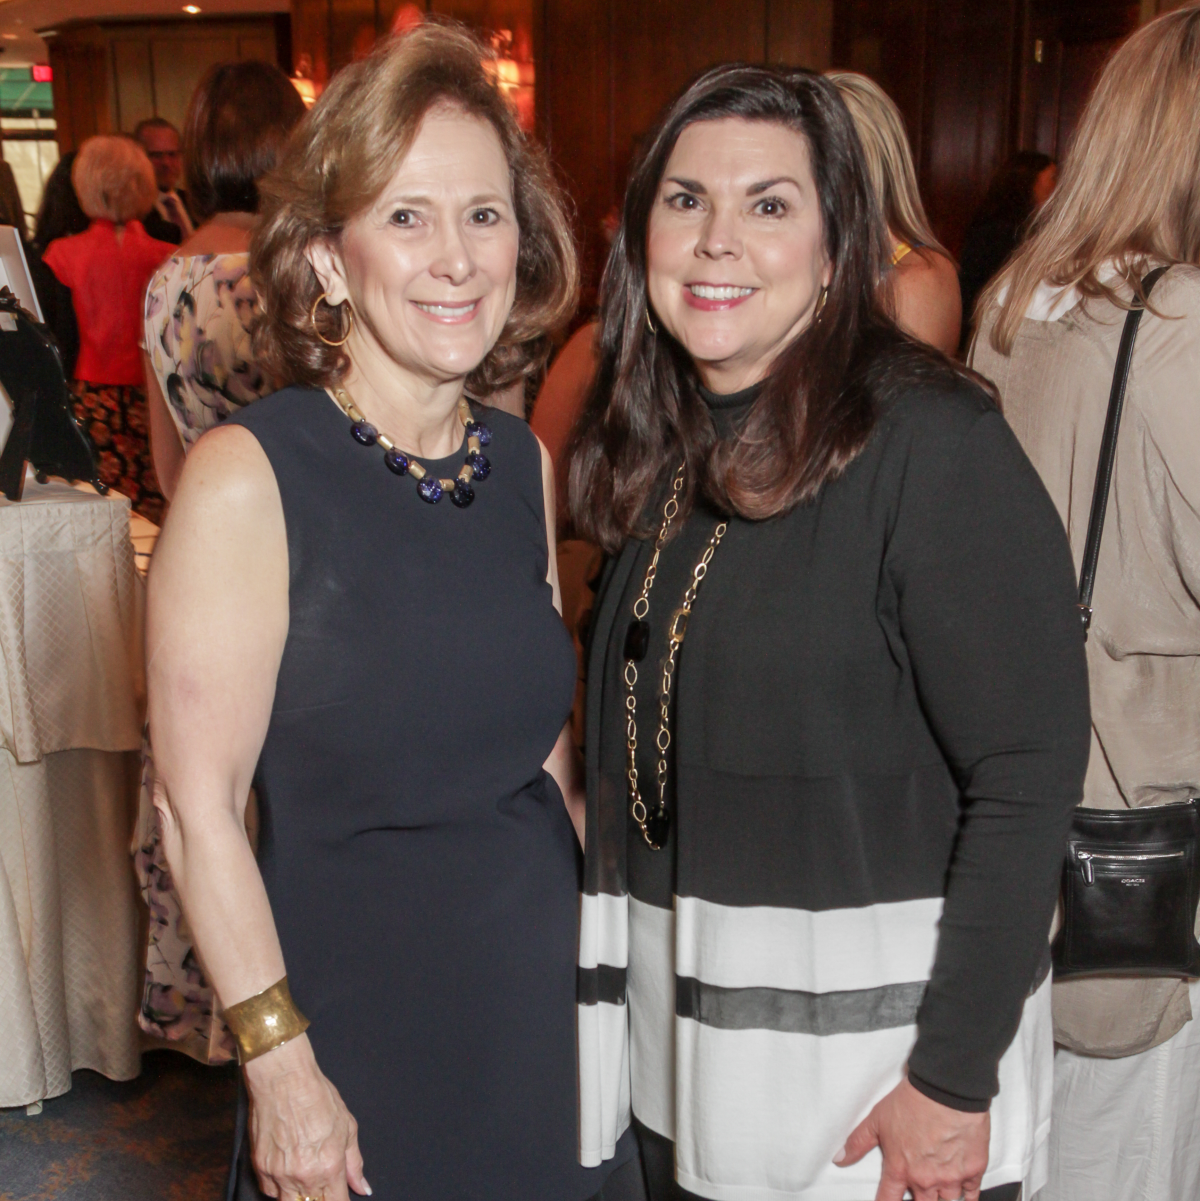 Houston, More Than You Can Imagine luncheon, April 2016, Franelle Rogers and Lesha Elsenbrook